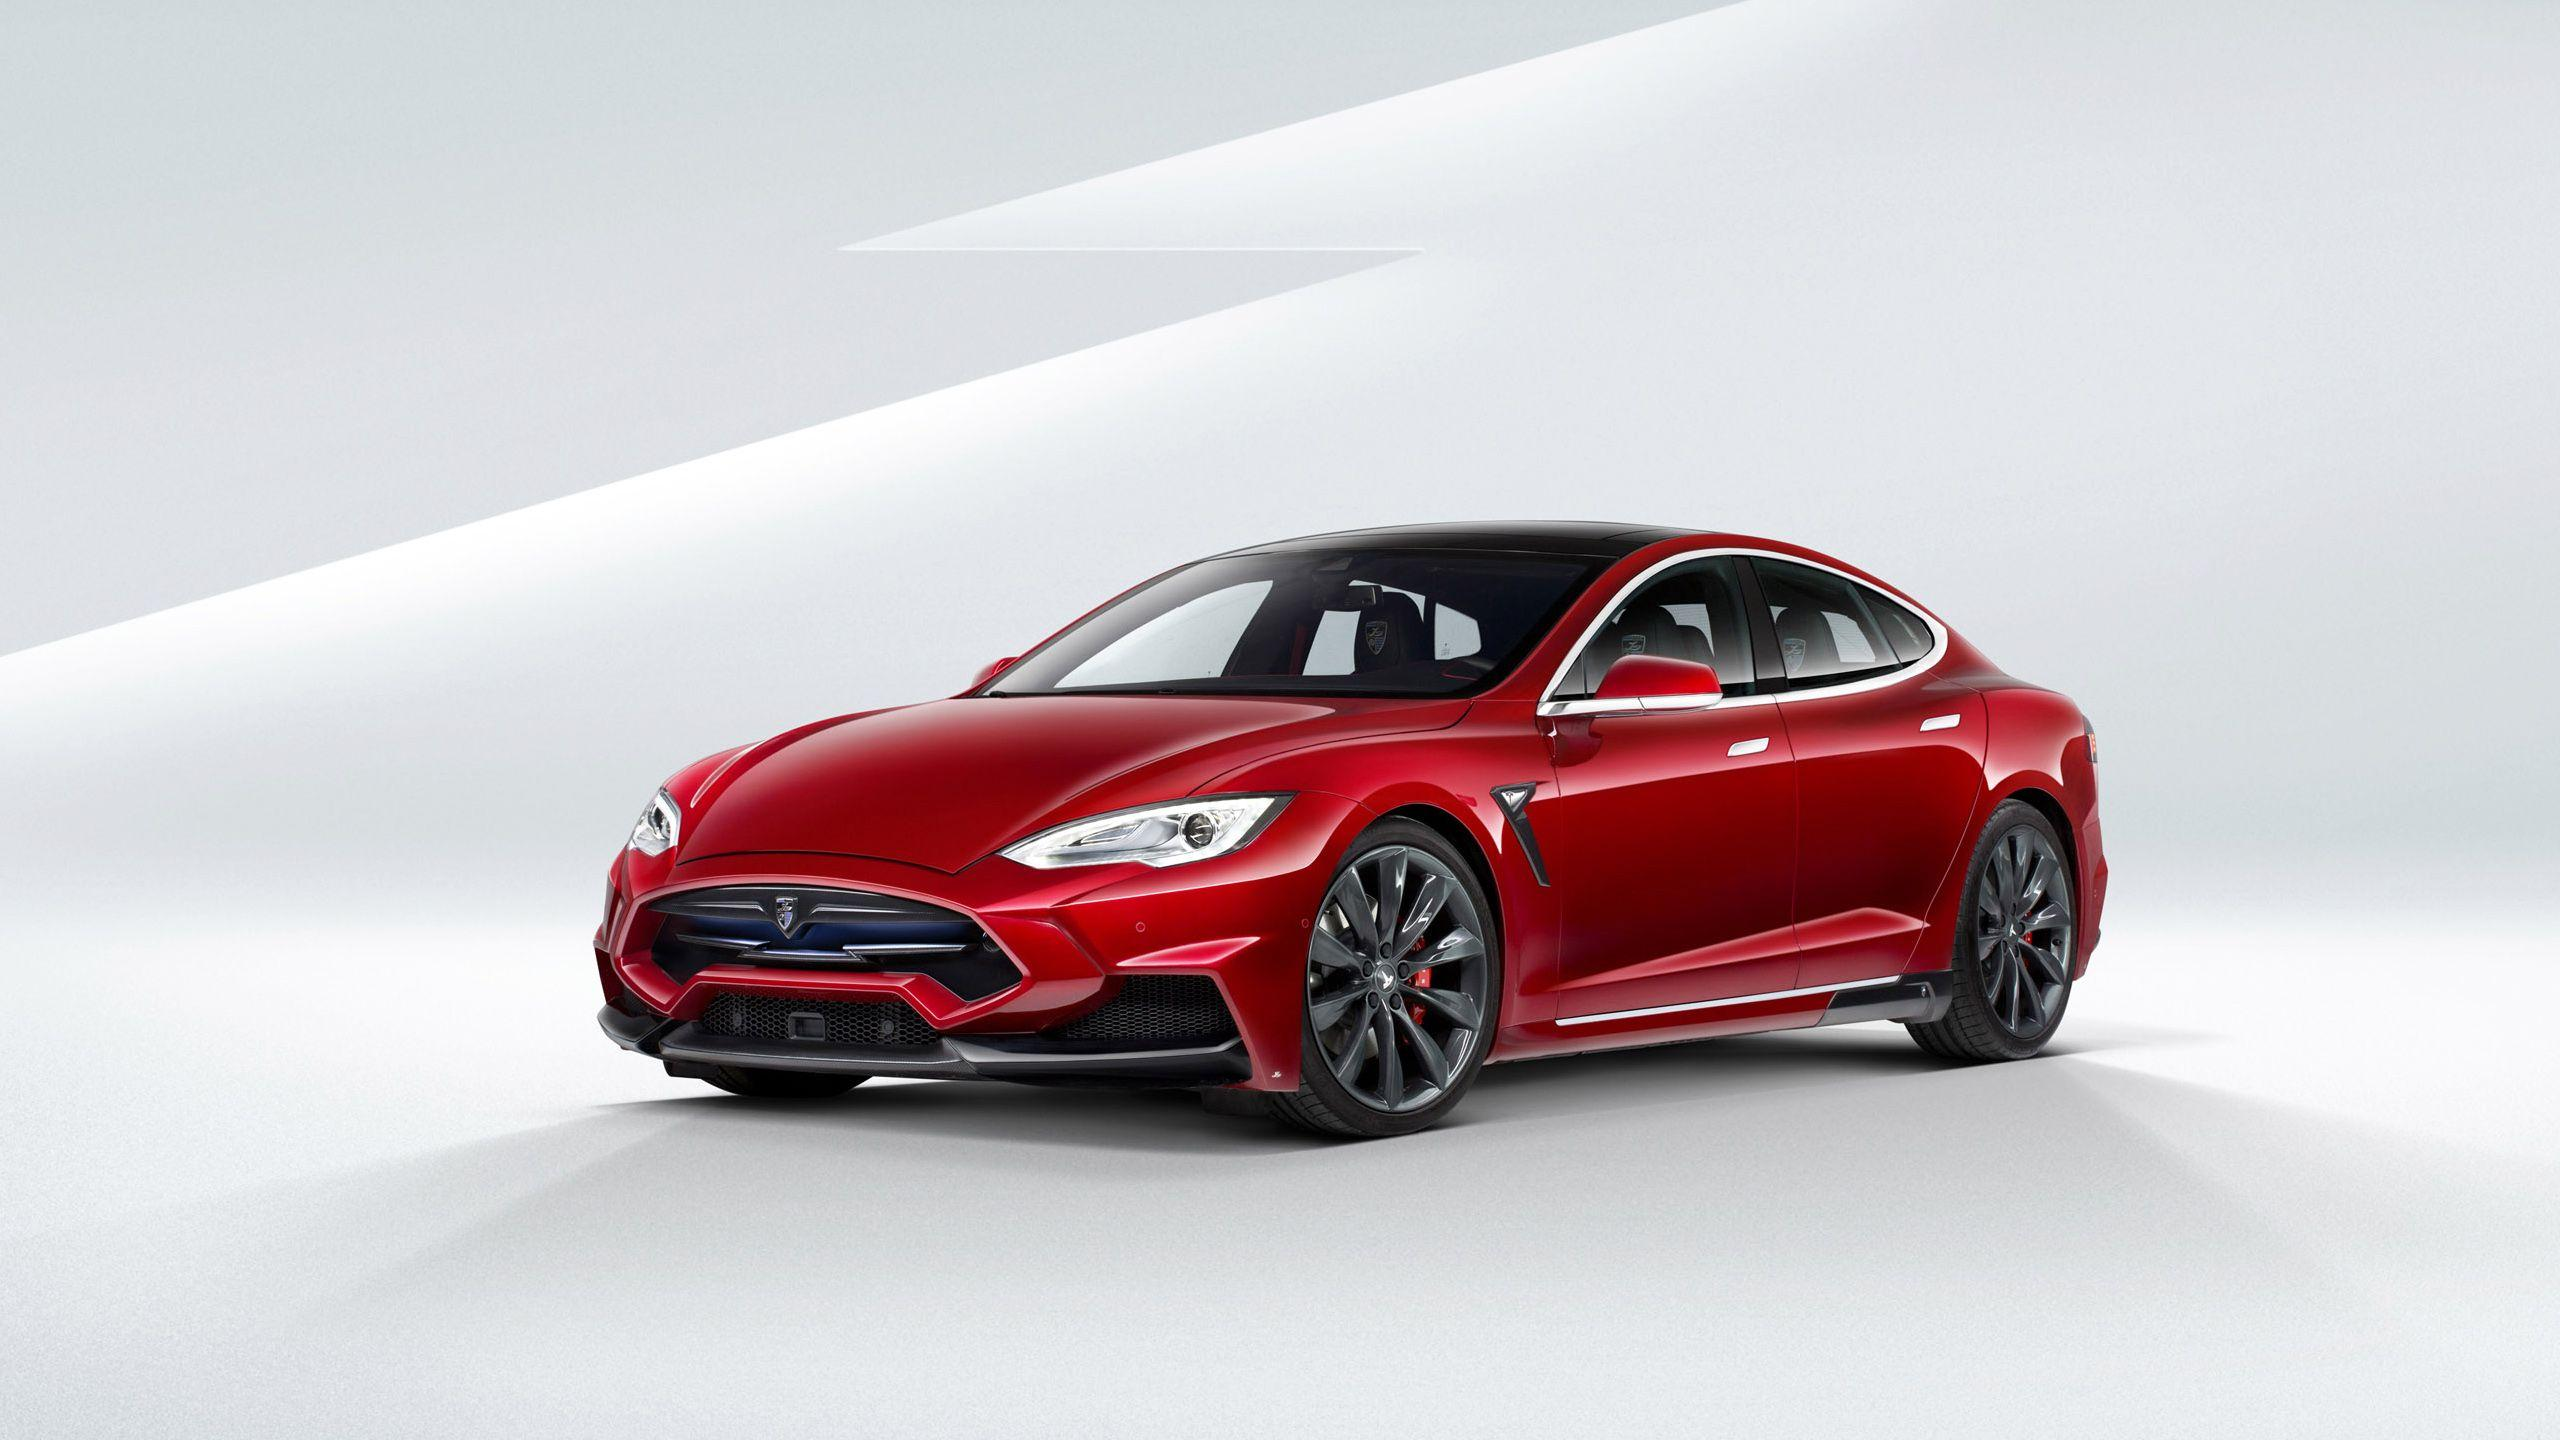 2016 Tesla Model S Wallpapers HD Photos, Wallpapers and other Image